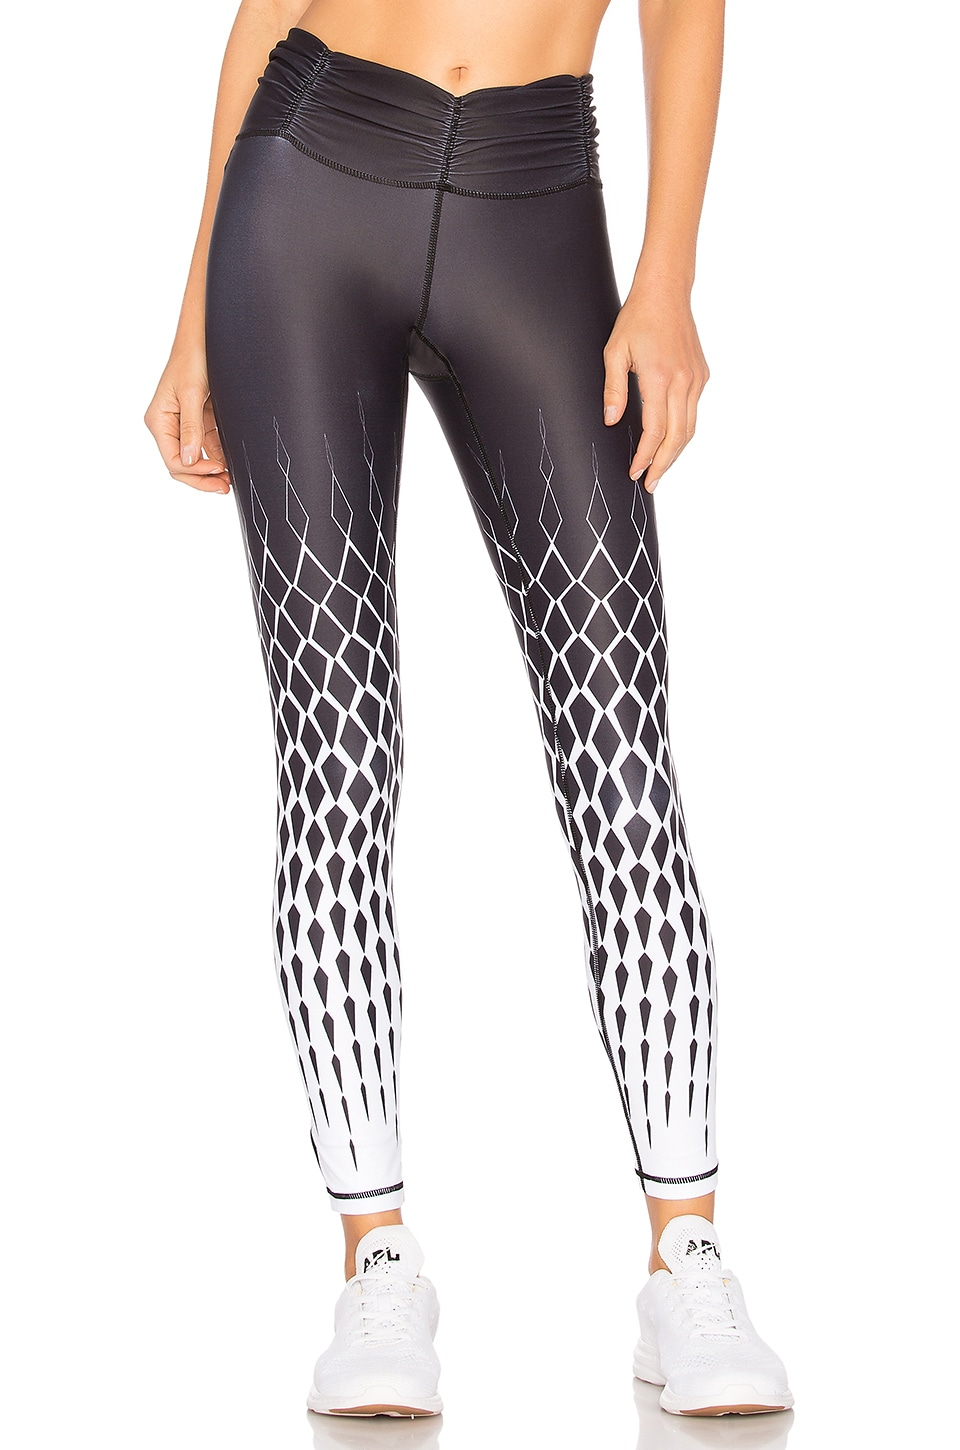 Chill By Will Bliss Legging In Black Geo Revolve Pants